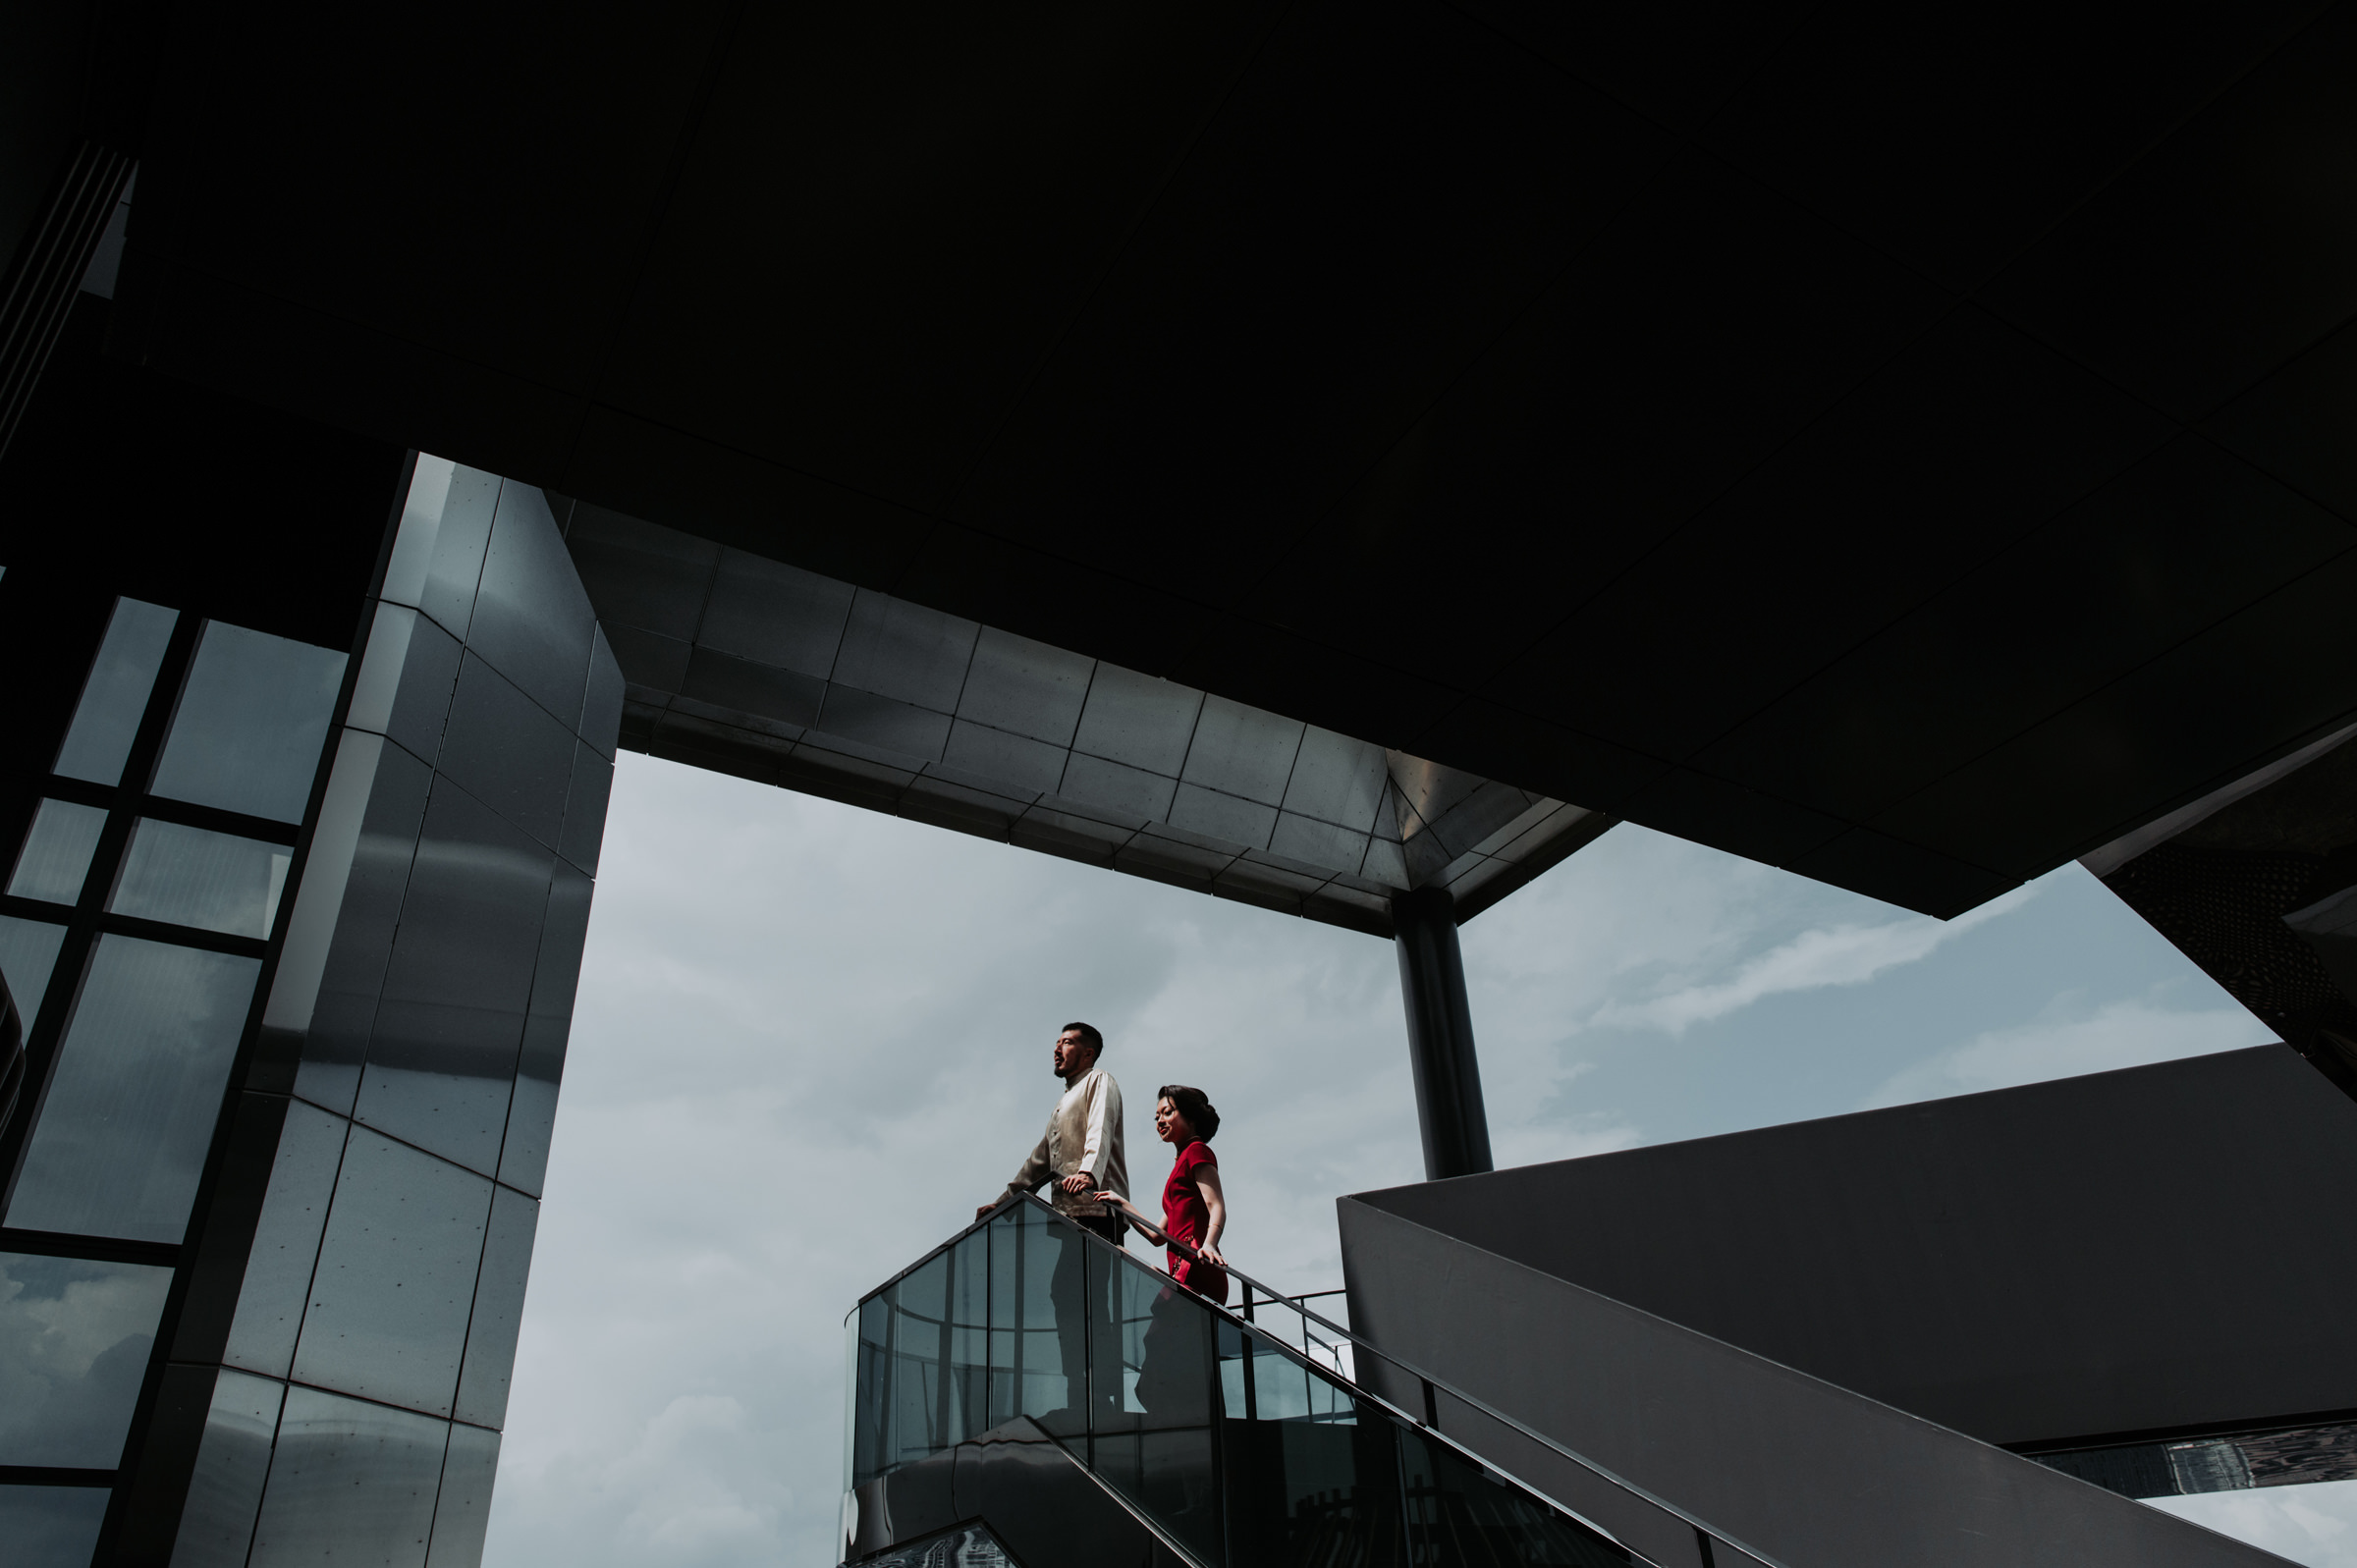 Engagement couple in architectural setting - photo by Mun Keat Studio